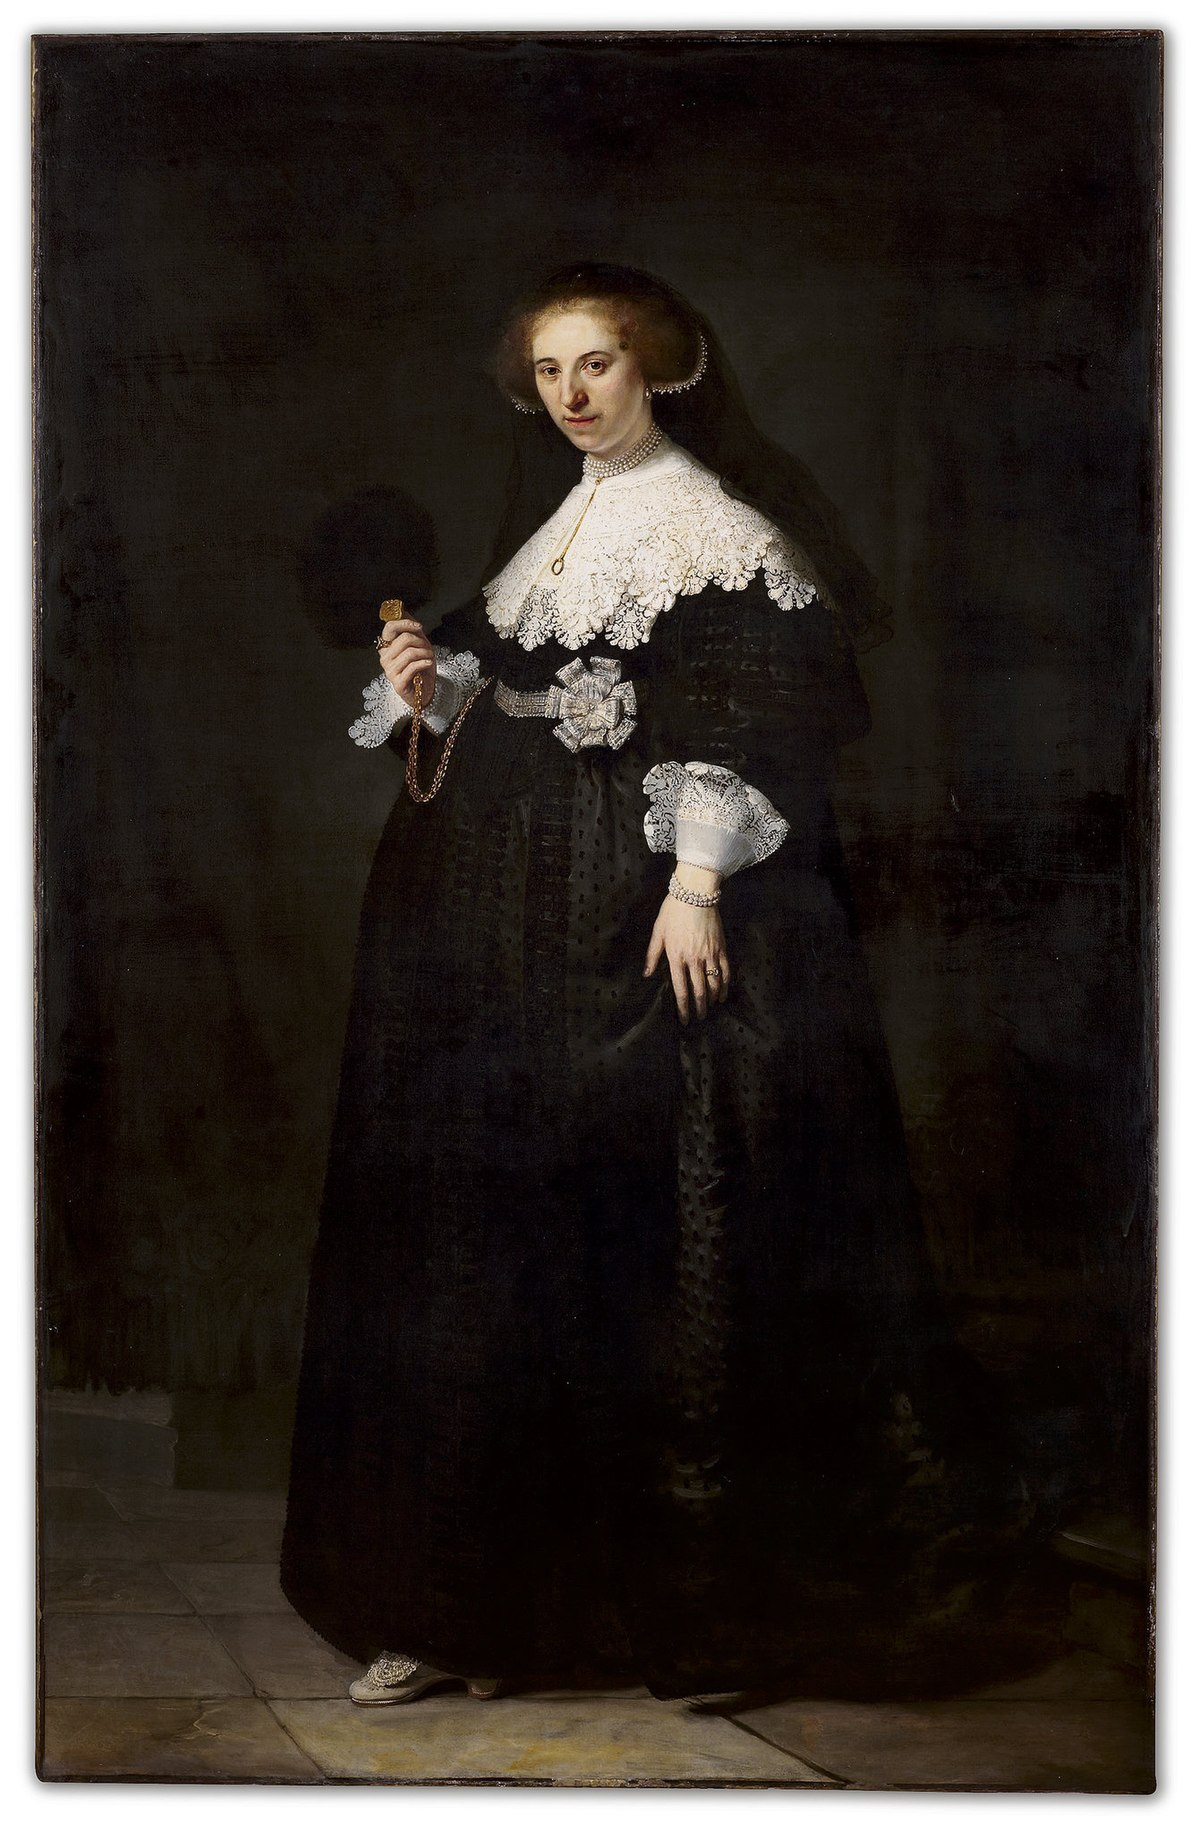 Rembrandt, Portrait of Oopjen Coppit